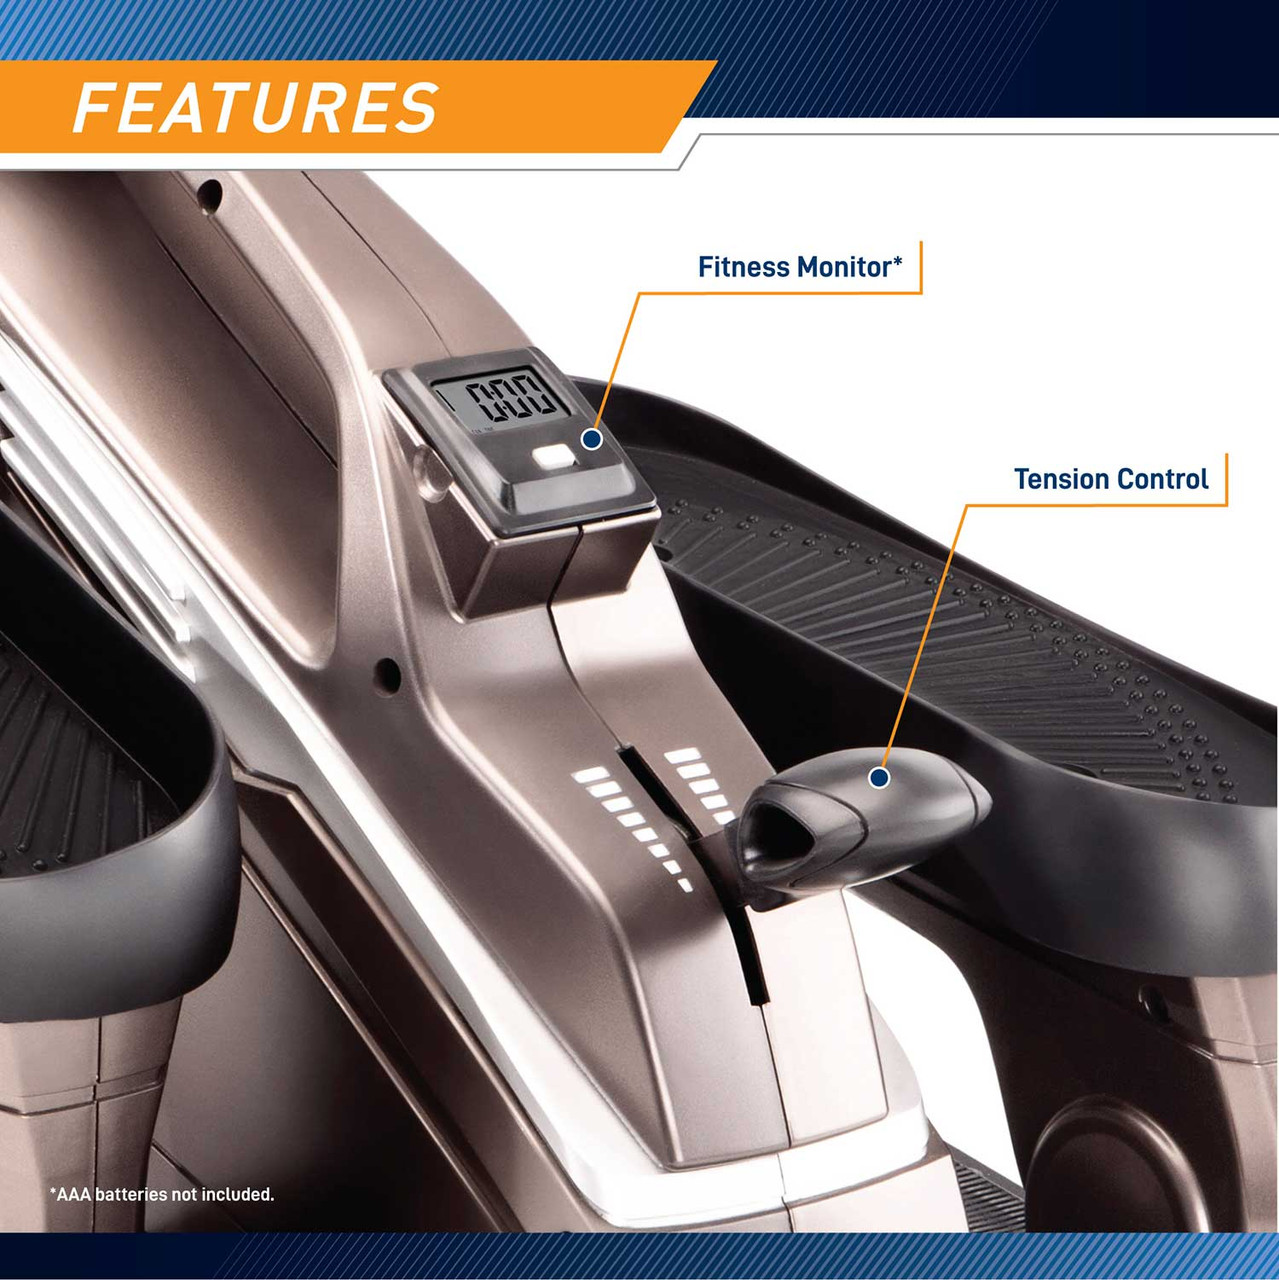 Bionic Body Compact Elliptical Trainer with Resistance Tubes has adjustable tension